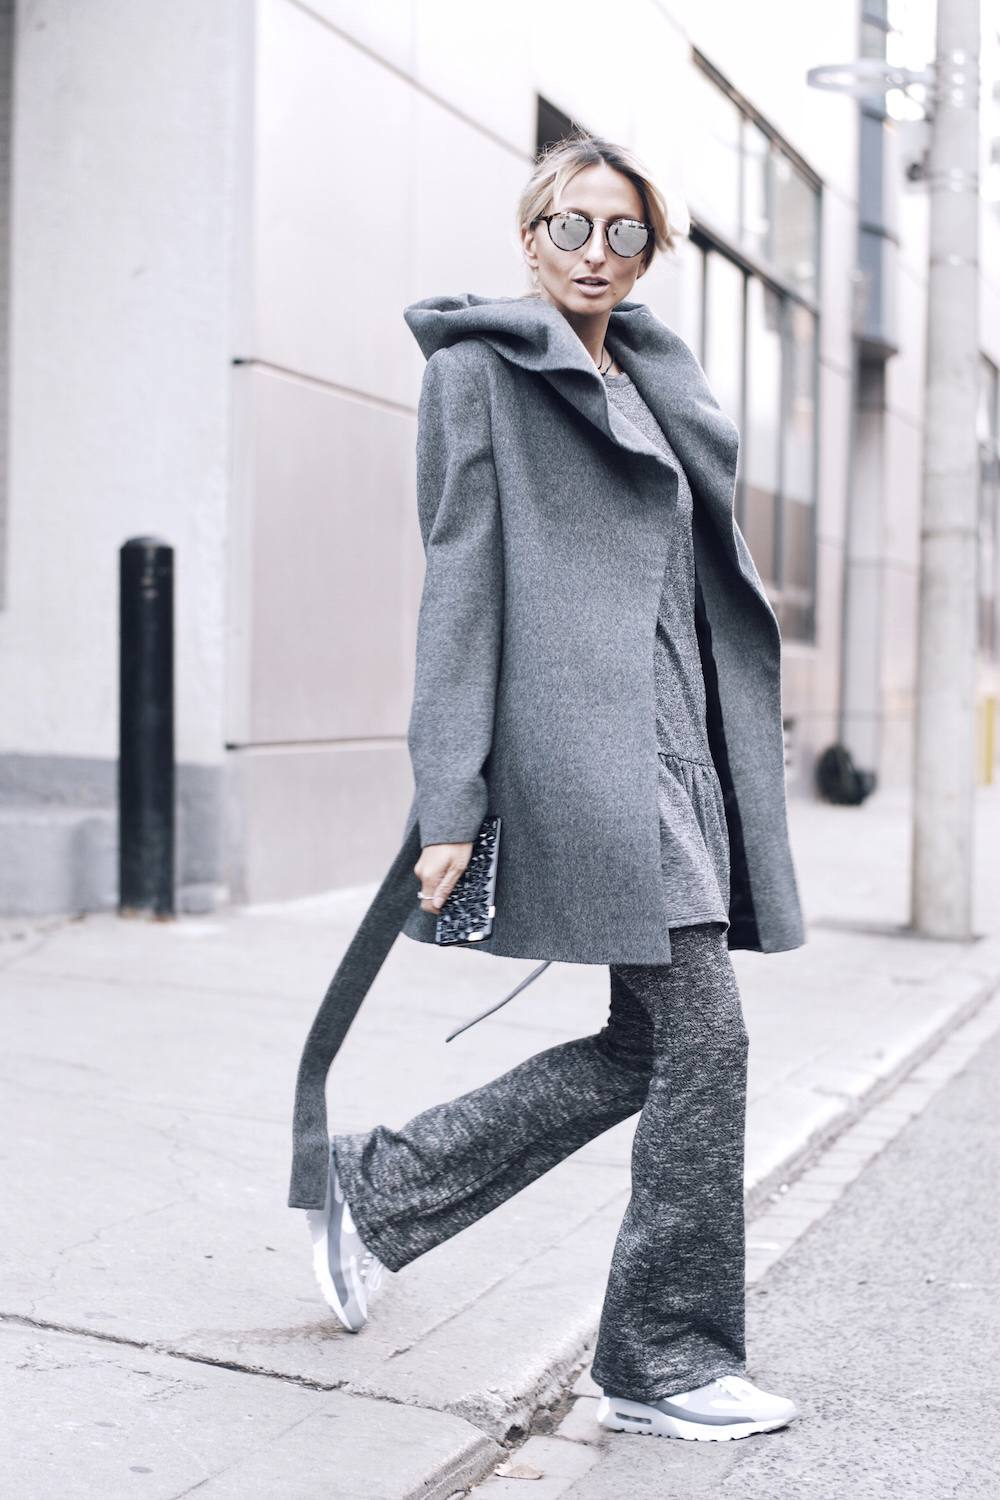 All-grey-outift-monochrome-street-style-05